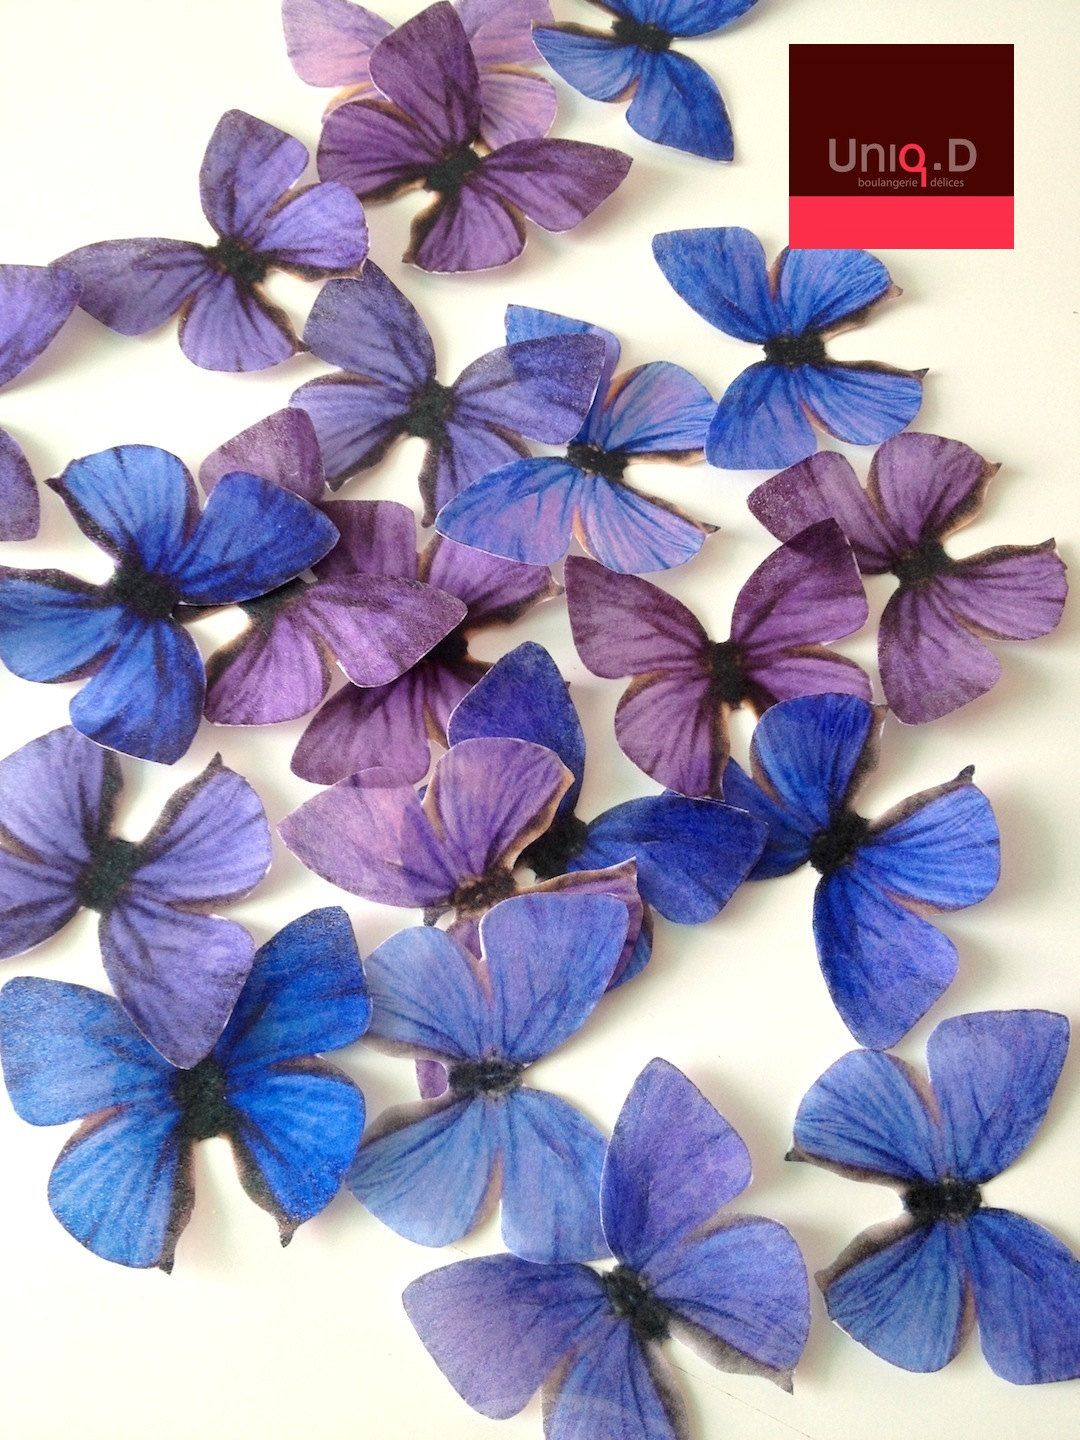 Purple and blue wedding decor   lapis purple edible butterflies  royal blue wedding cake